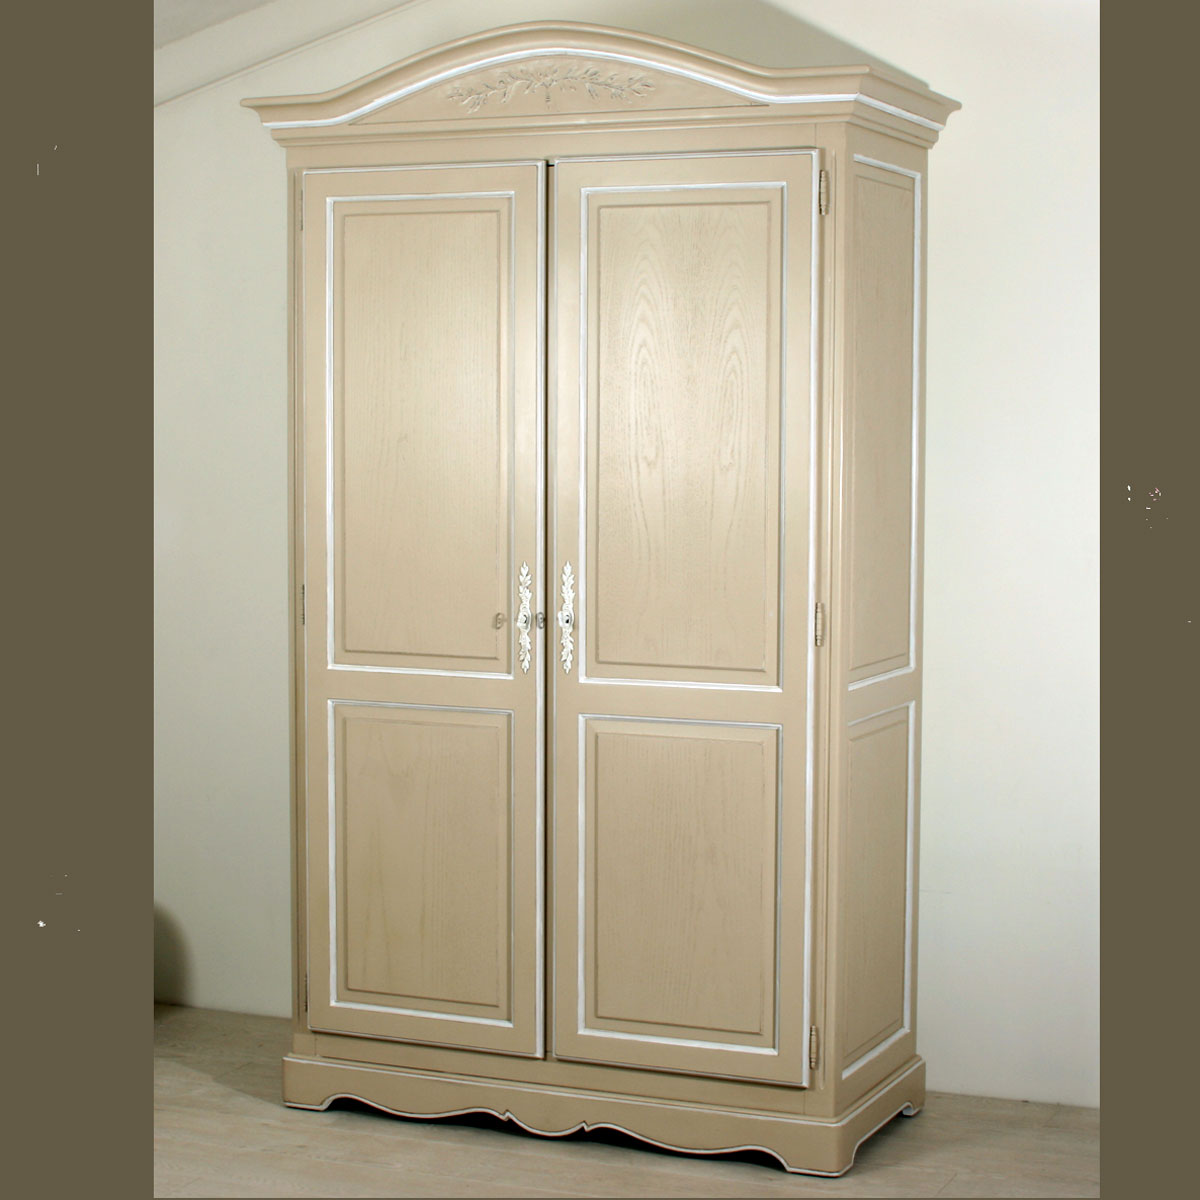 armoire anth or deux portes ref t19 l 39 atelier du moulin de provence. Black Bedroom Furniture Sets. Home Design Ideas